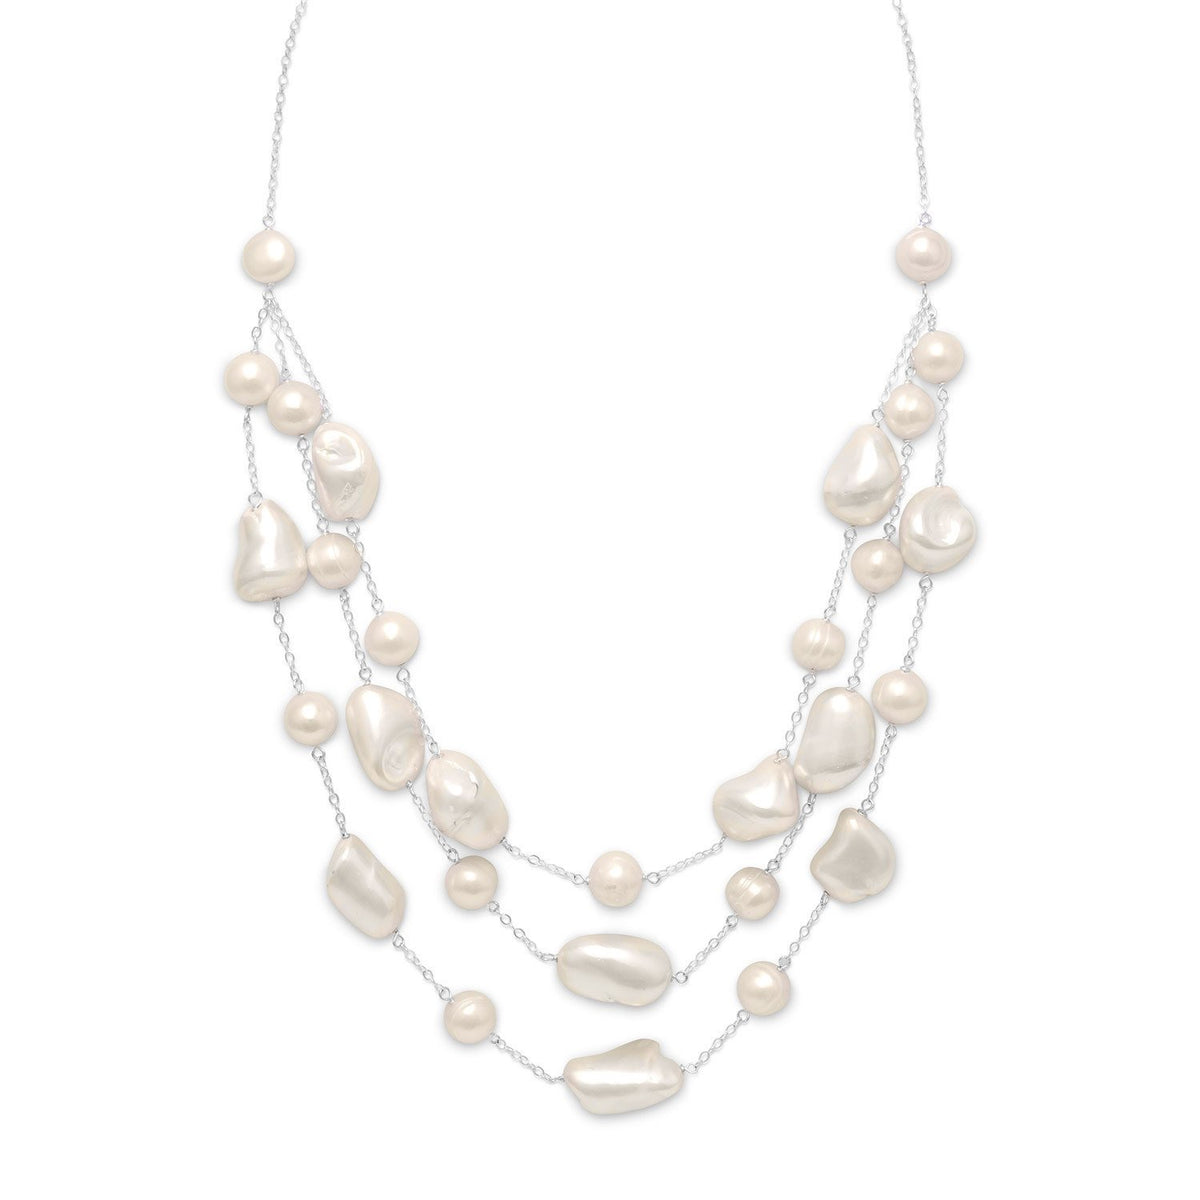 3 Strand Graduated Pearl and Shell Bib Statement Necklace - Latoya Boyd Jewelry